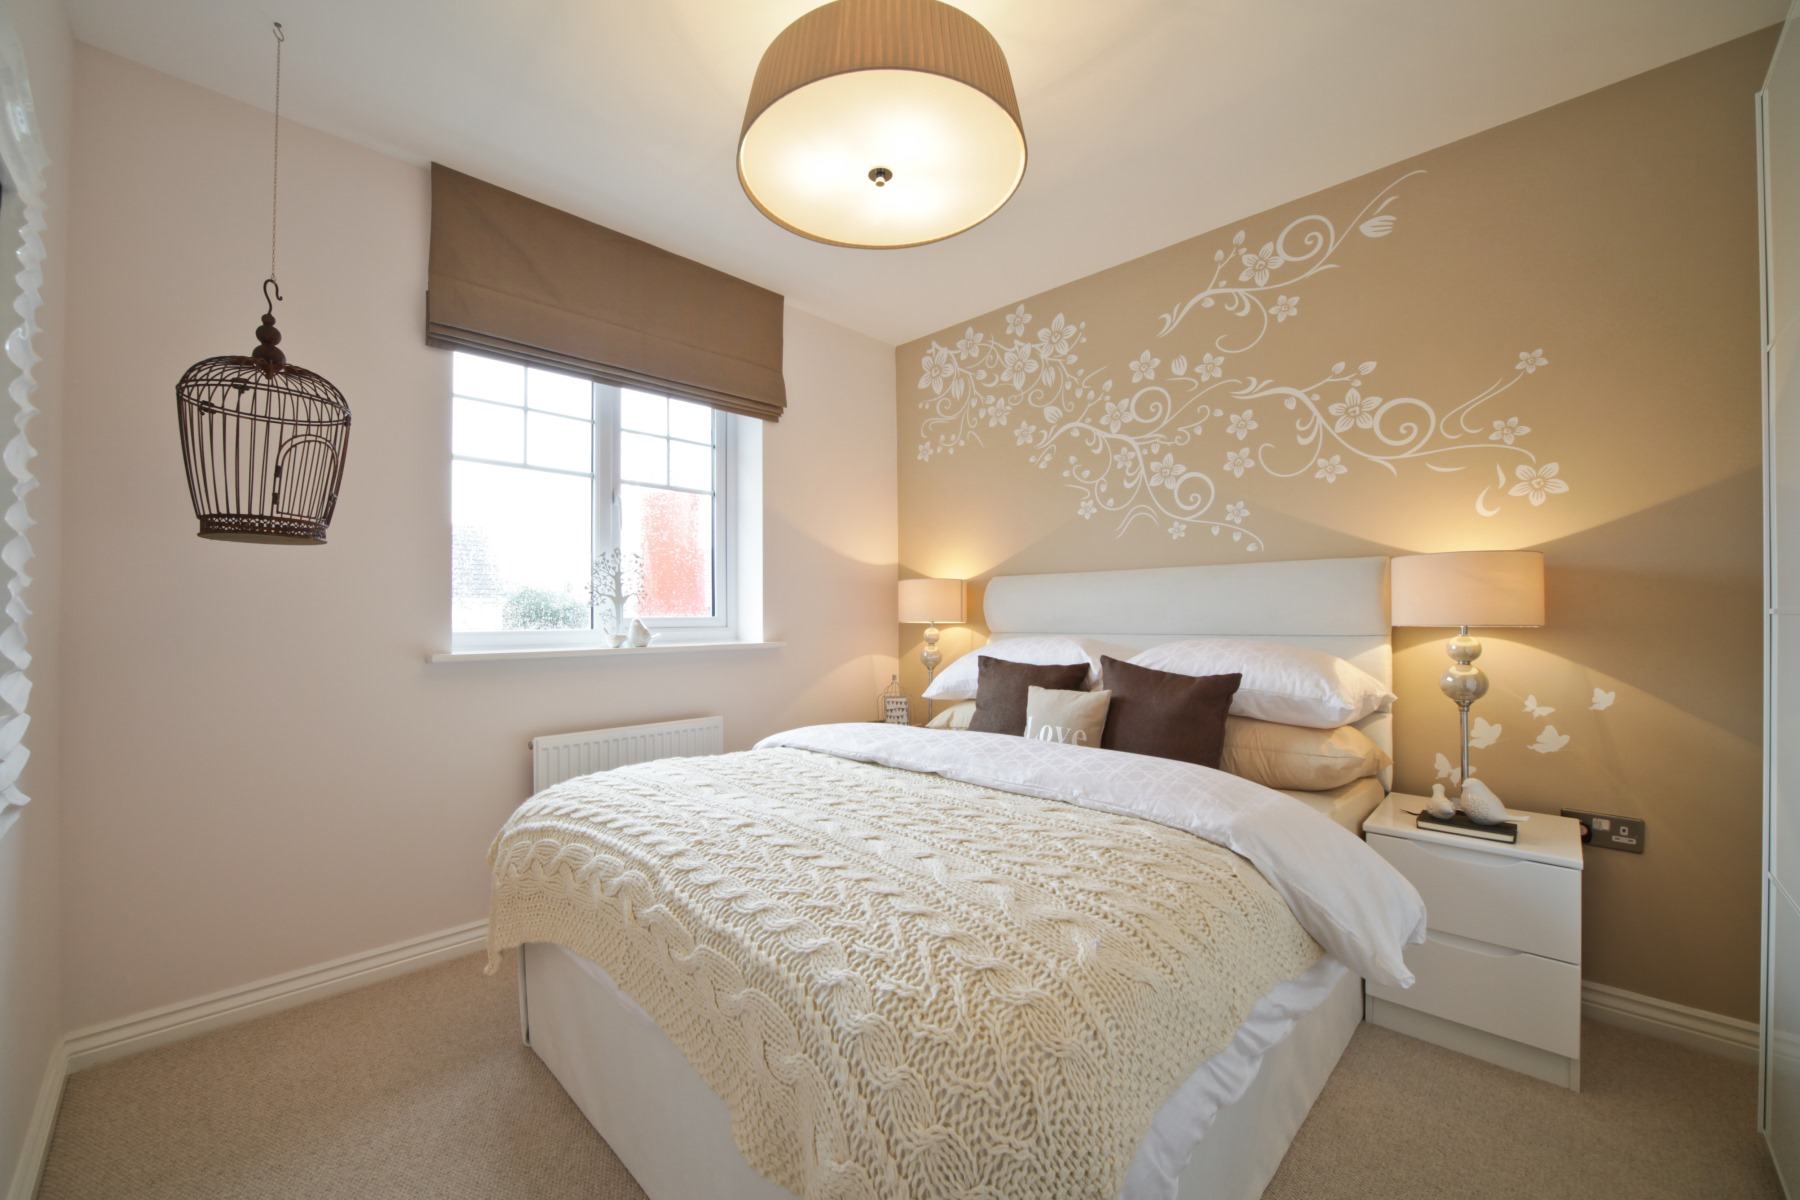 Knutsford Showhome - Bedroom 2